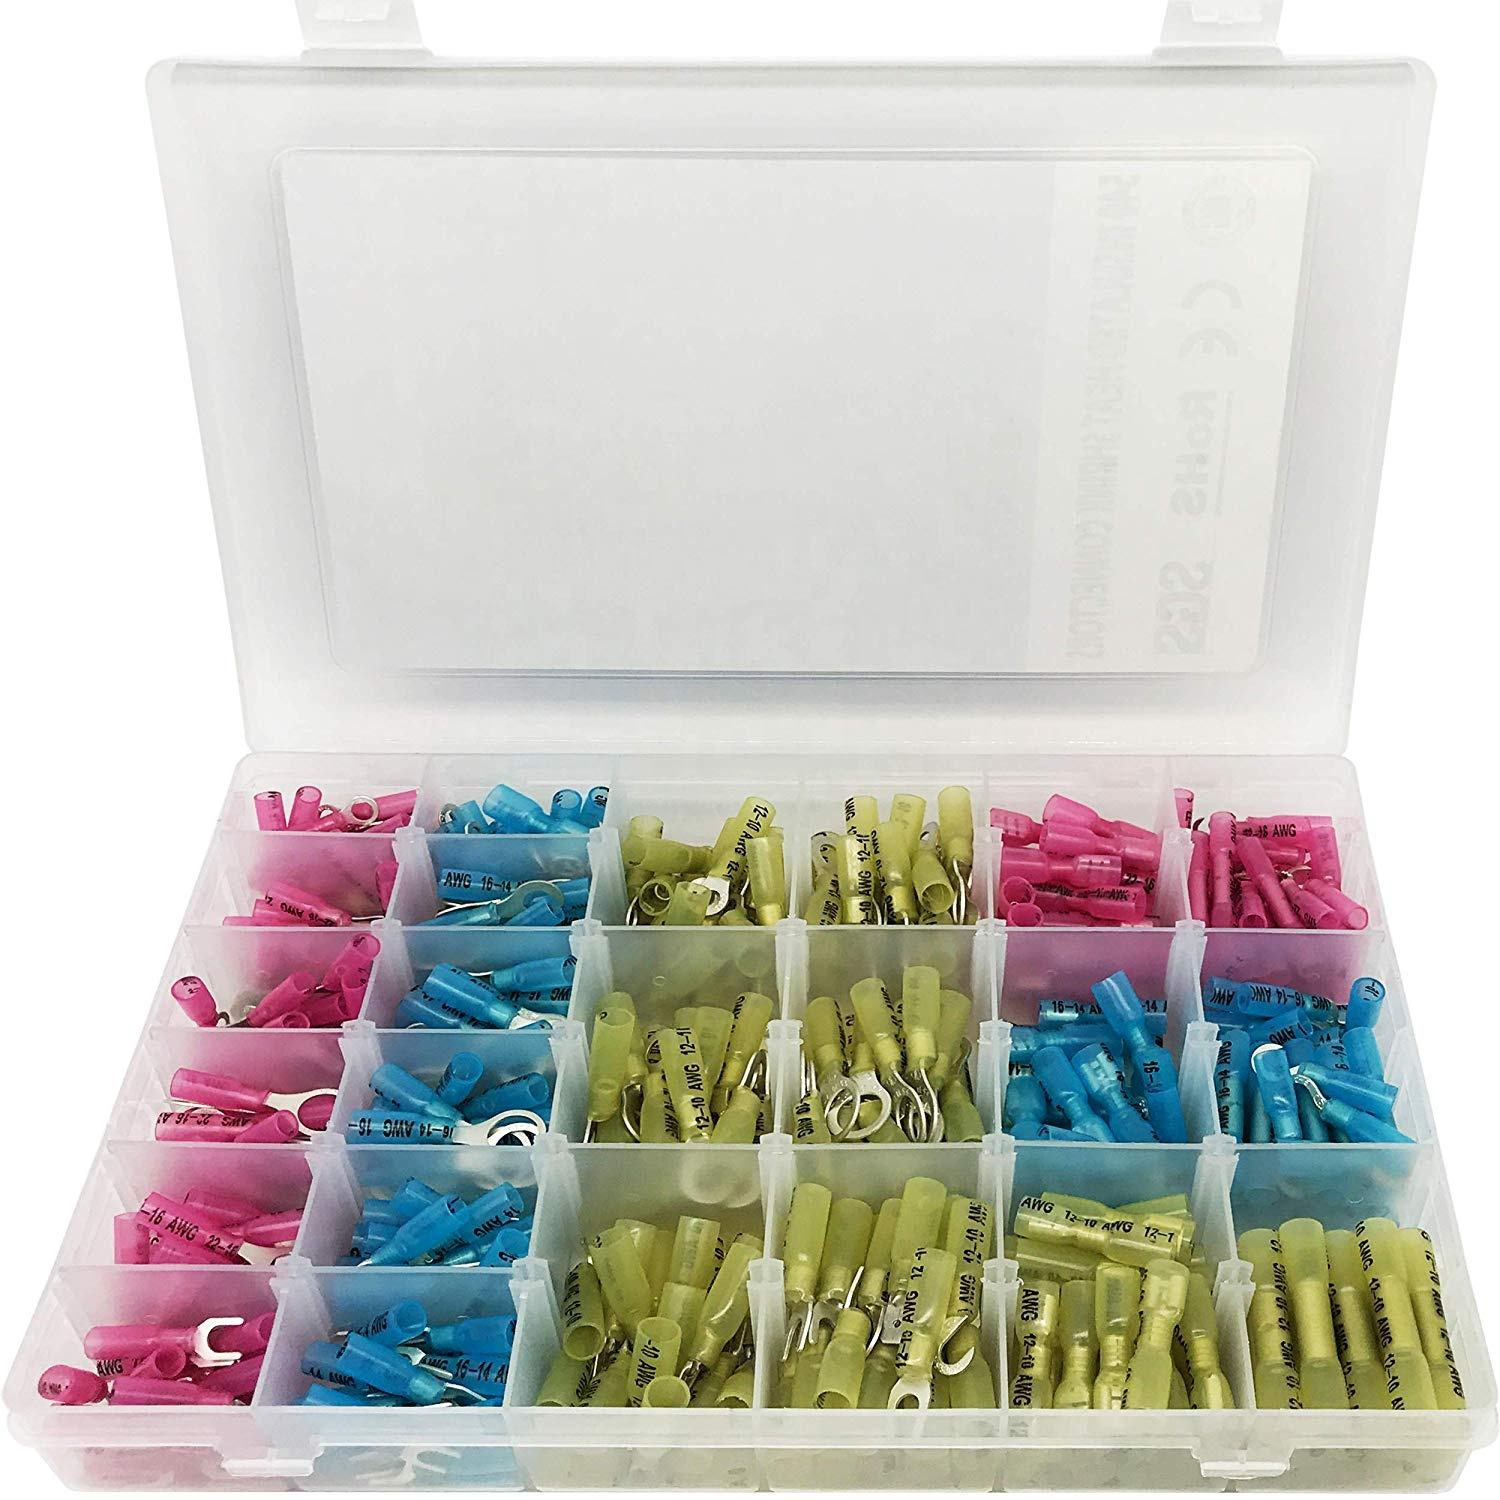 270 PCS, Heat Shrink Connectors, Marine Automotive Electrical Insulated, Crimp Wire Terminal